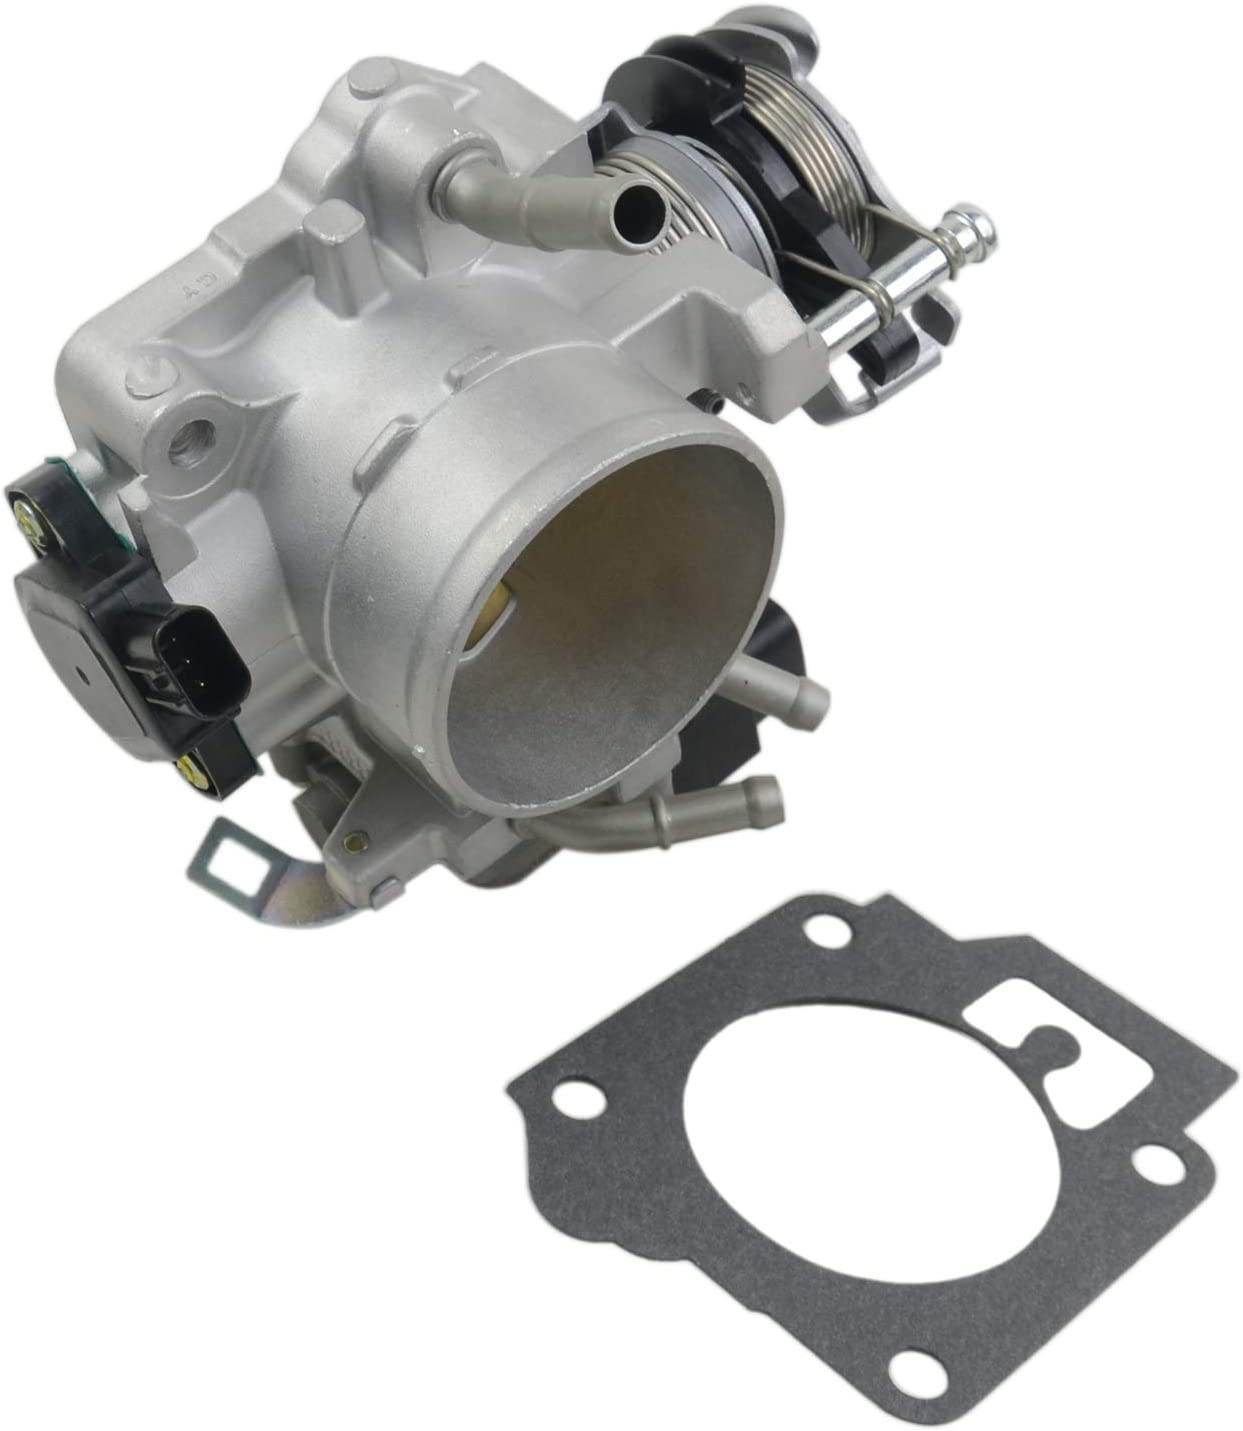 Cable Drive Throttle Body 16400-RAA-A62 For Honda Accord LX EX DX SE 2.4L 03-05